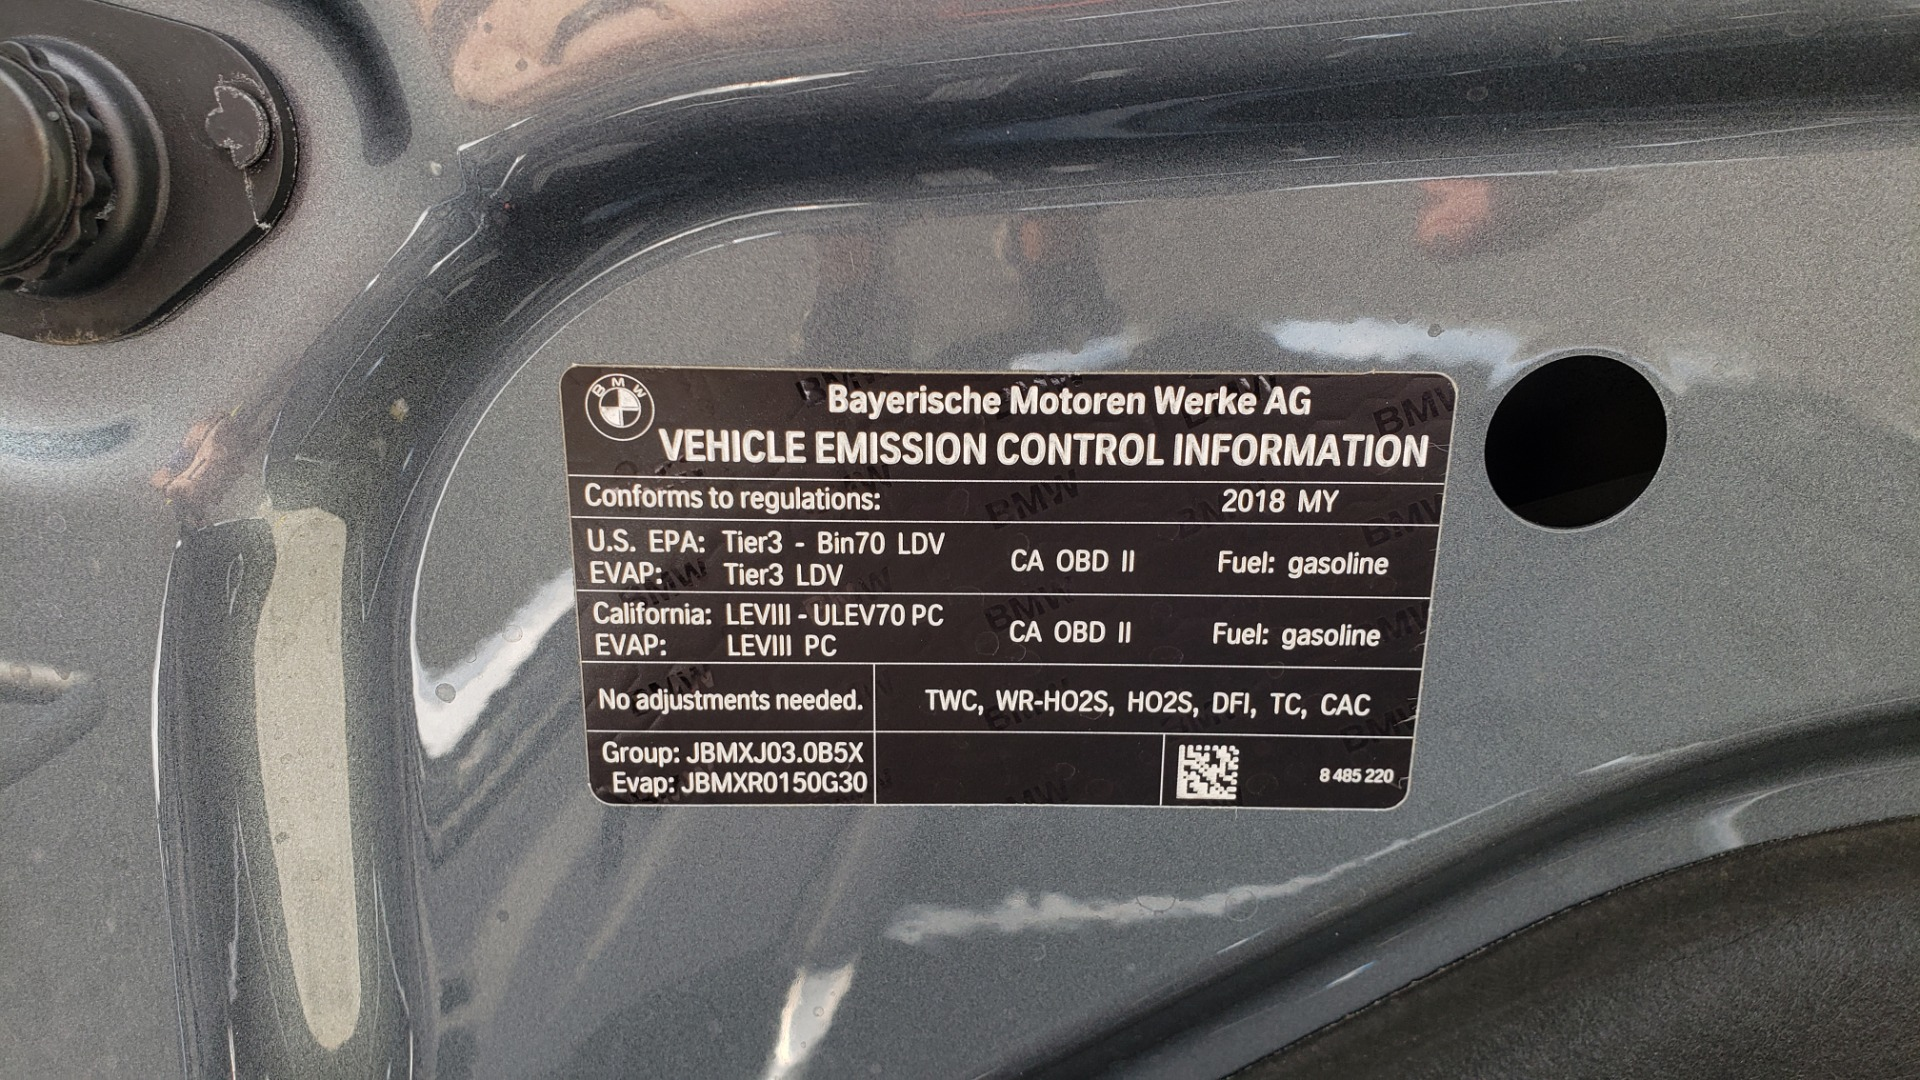 Used 2018 BMW 5 SERIES 540I XDRIVE PREMIUM / EXECUTIVE / LUXURY / H/K SND / REMOTE CONTROL PARKING for sale $40,995 at Formula Imports in Charlotte NC 28227 15